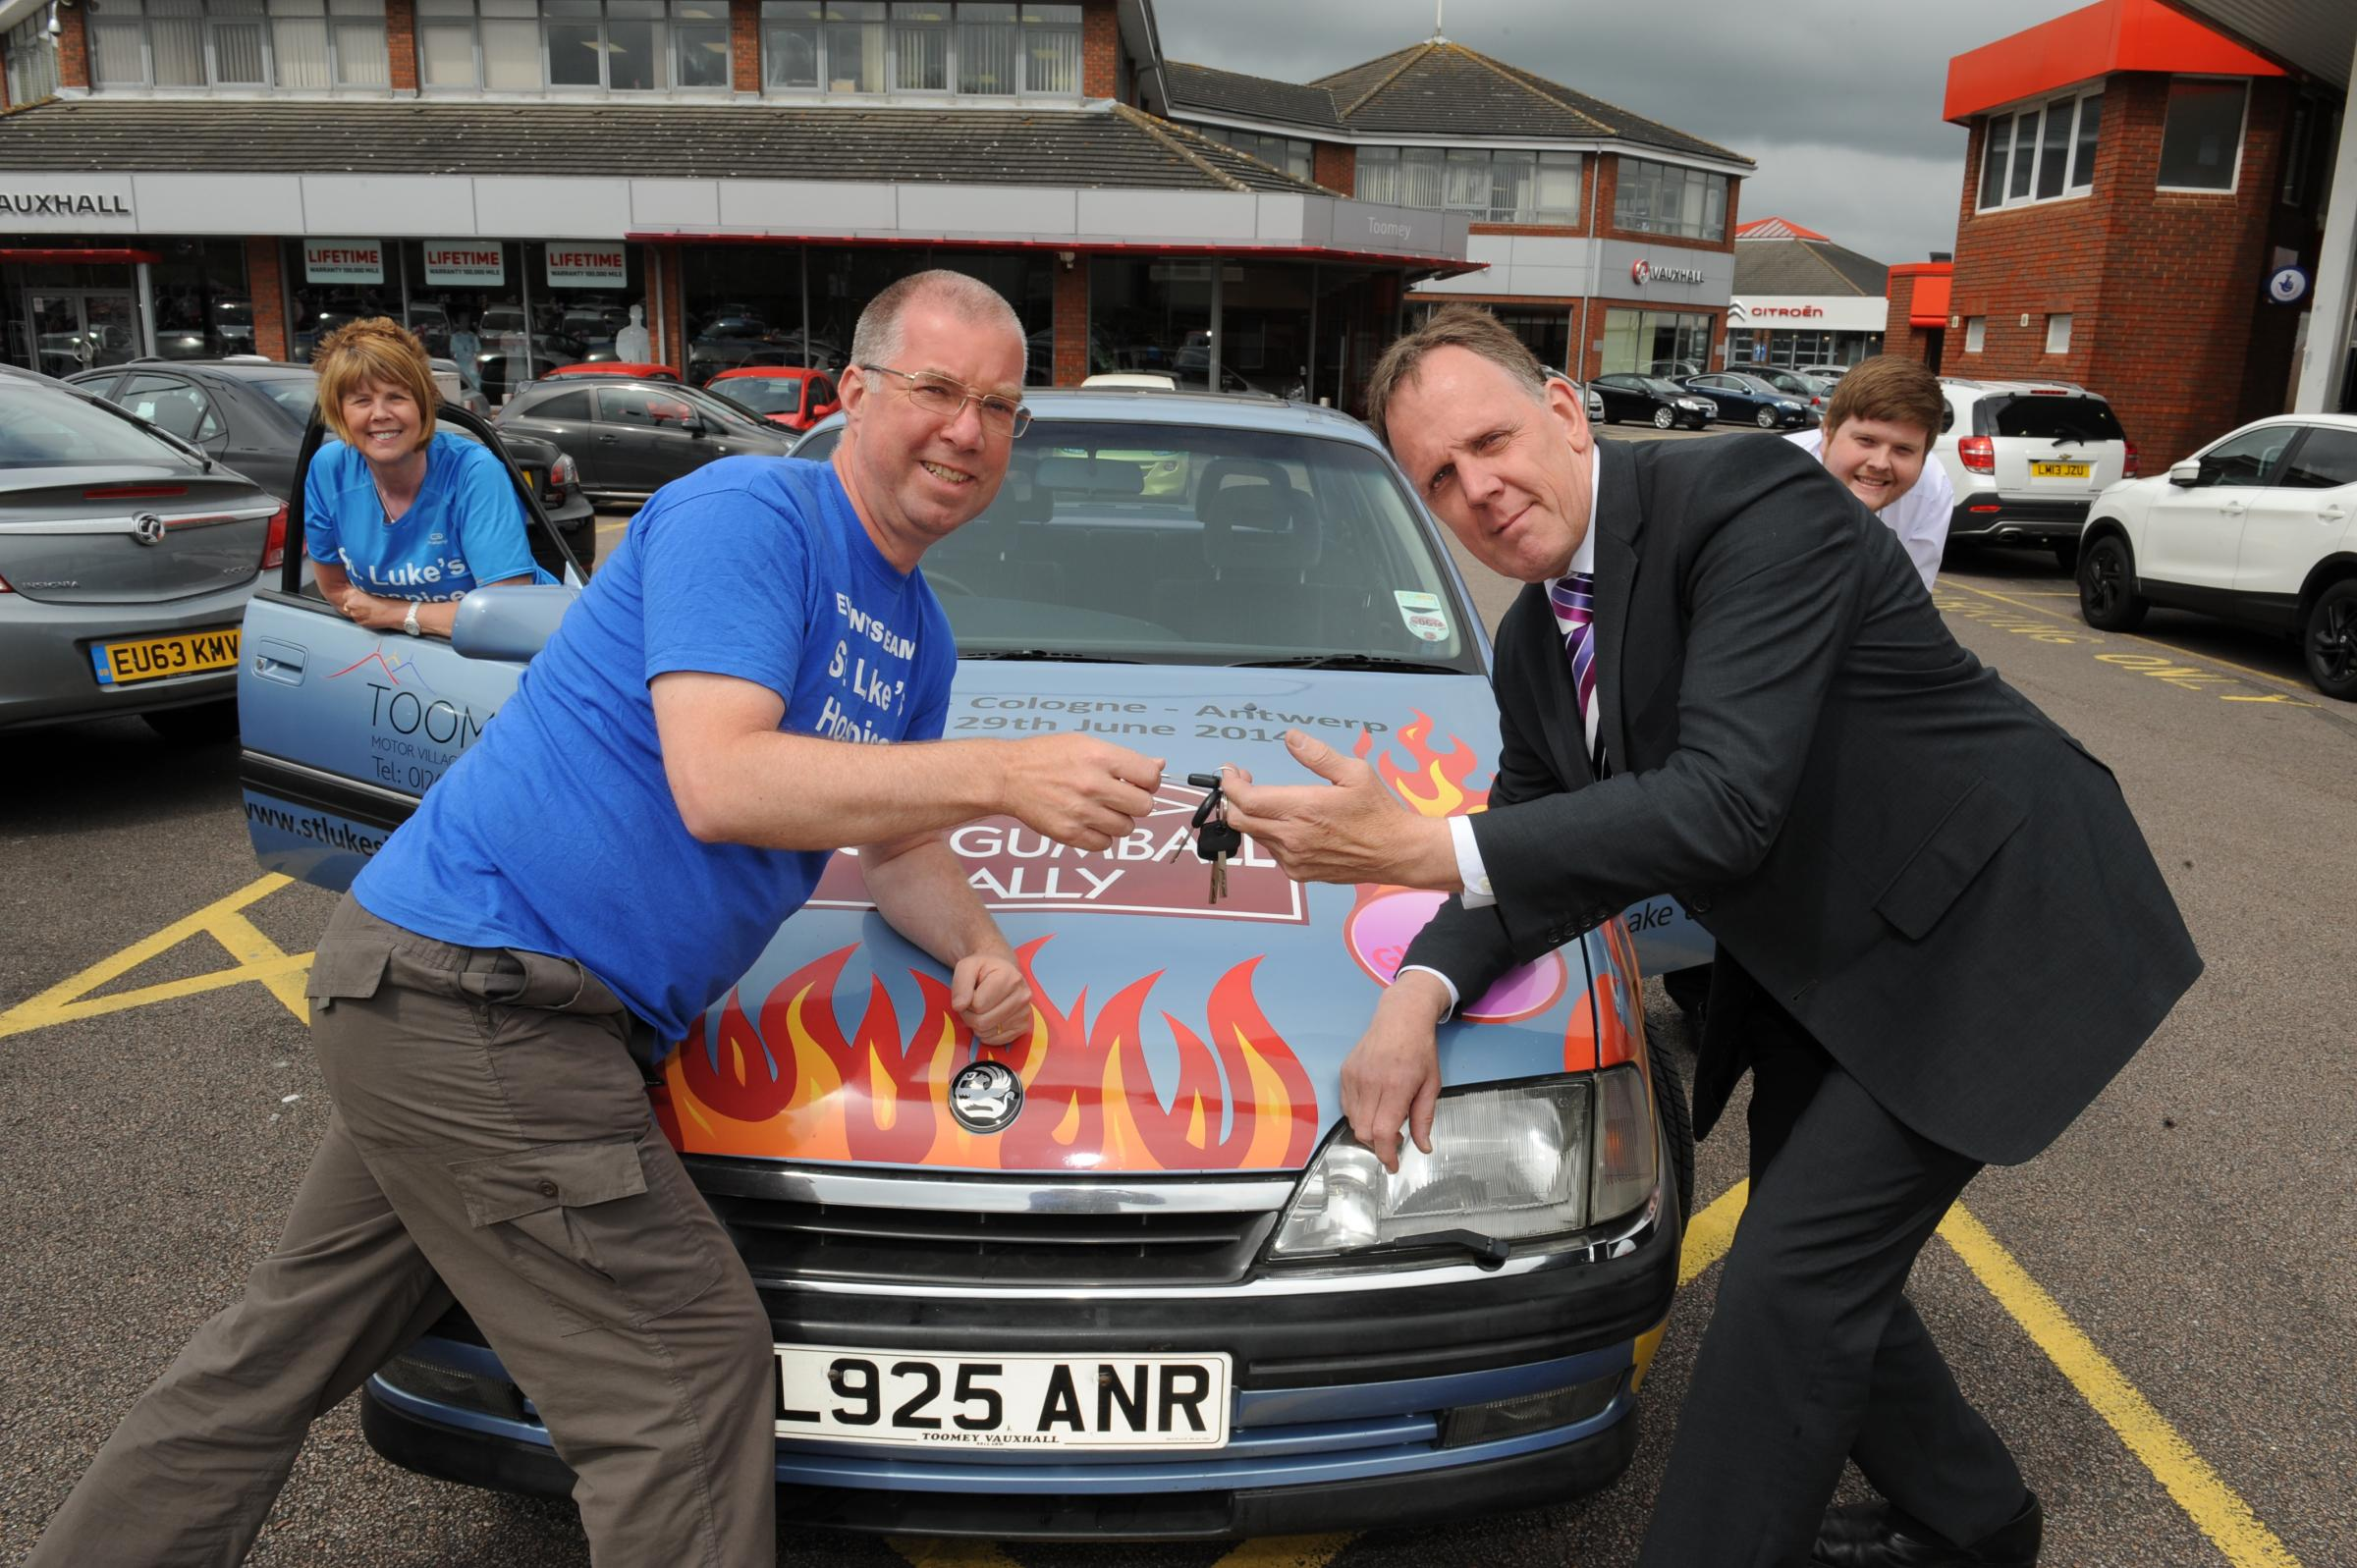 Charity rally – MD of Toomey Motor Village, in Basildon, Barry Ives hands the car keys over to Tony Bloomfield, from St Luke's Hospice